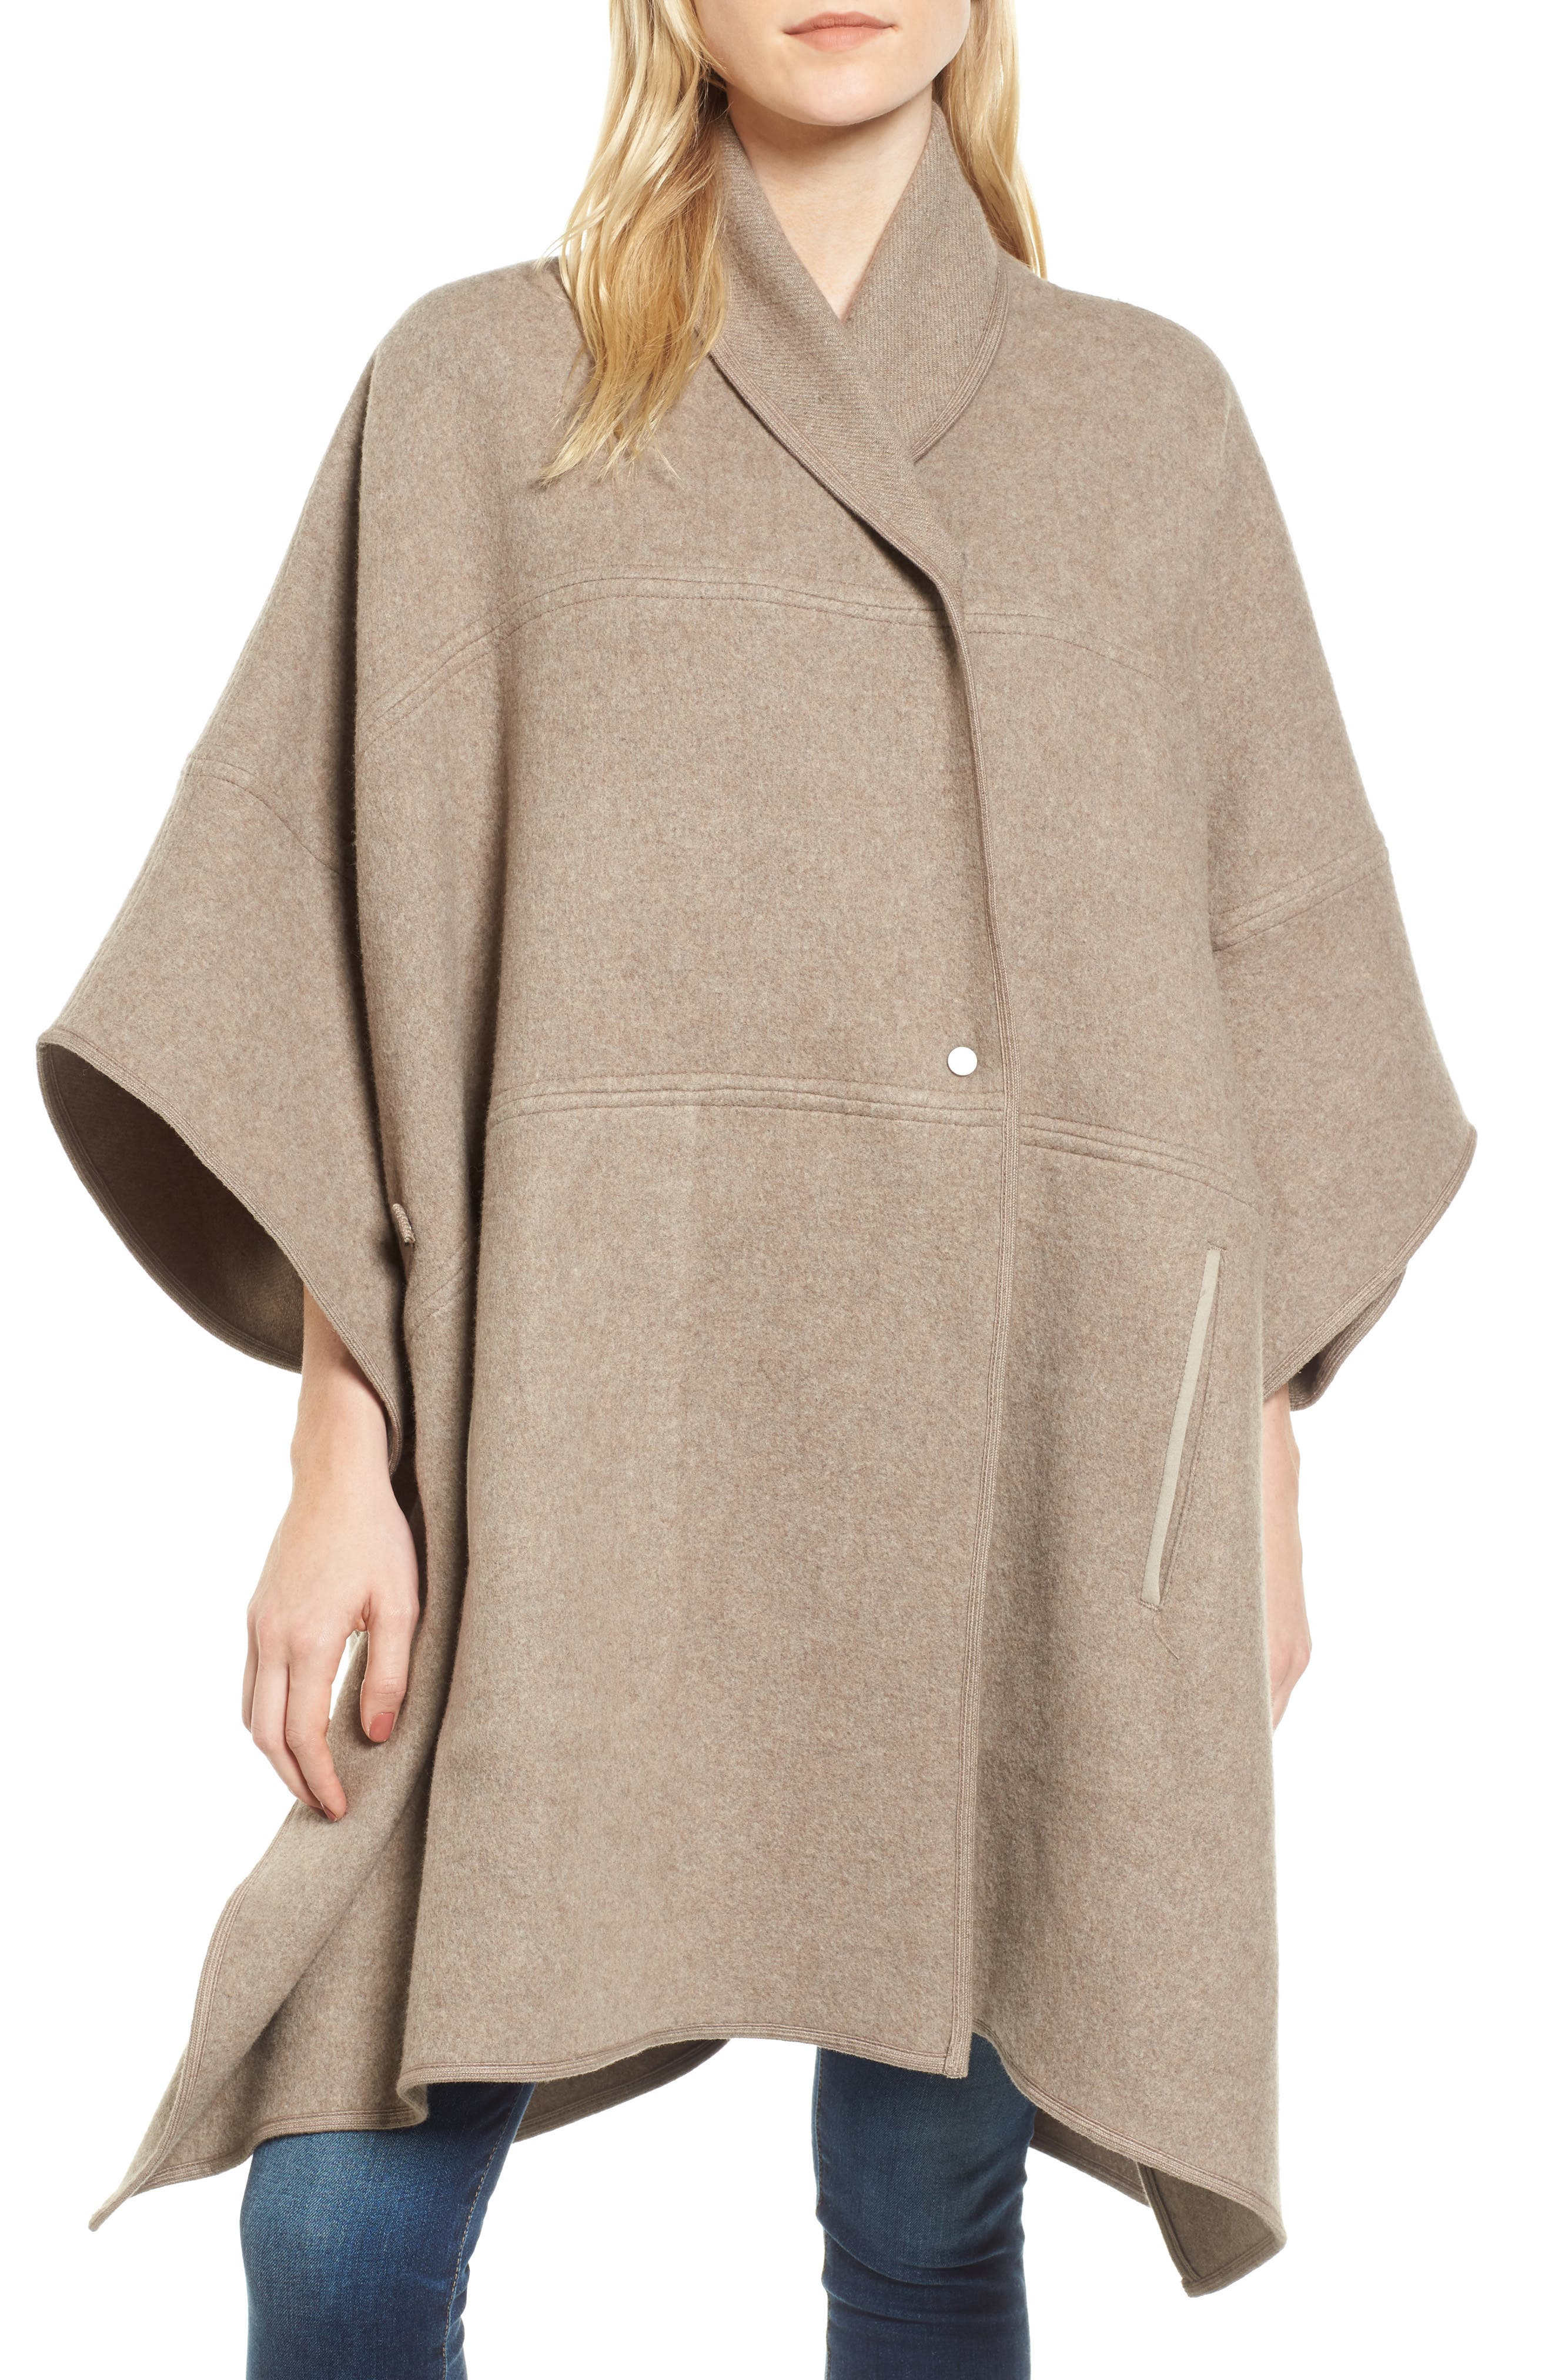 Main Image - James Perse Nomad Blanket Coat